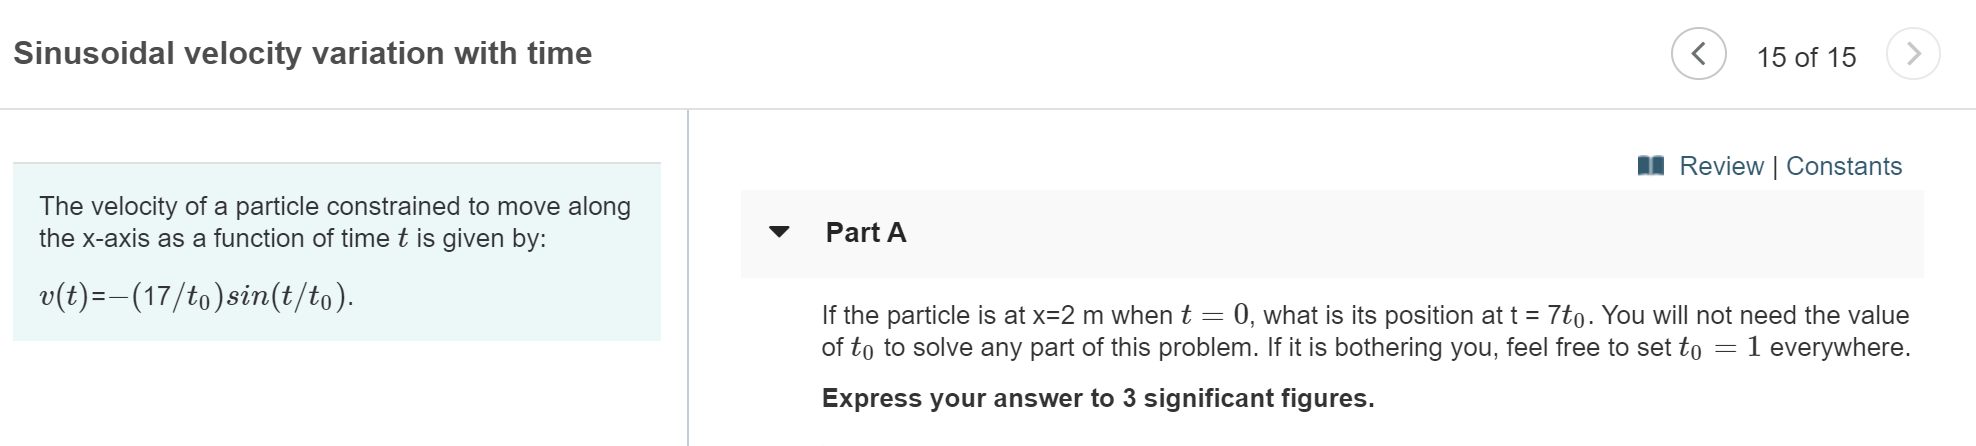 Sinusoidal velocity variation with time 15 of 15 Review   Constants The velocity of a particle constrained to move along the x-axis as a function of time t is given by: Part A v(t)-(17/to)sin(t/to) If the particle is at x=2 m when t 0, what is its position at t 7to. You will not need the value of to to solve any part of this problem. If it is bothering you, feel free to set to 1 everywhere. Express your answer to 3 significant figures.